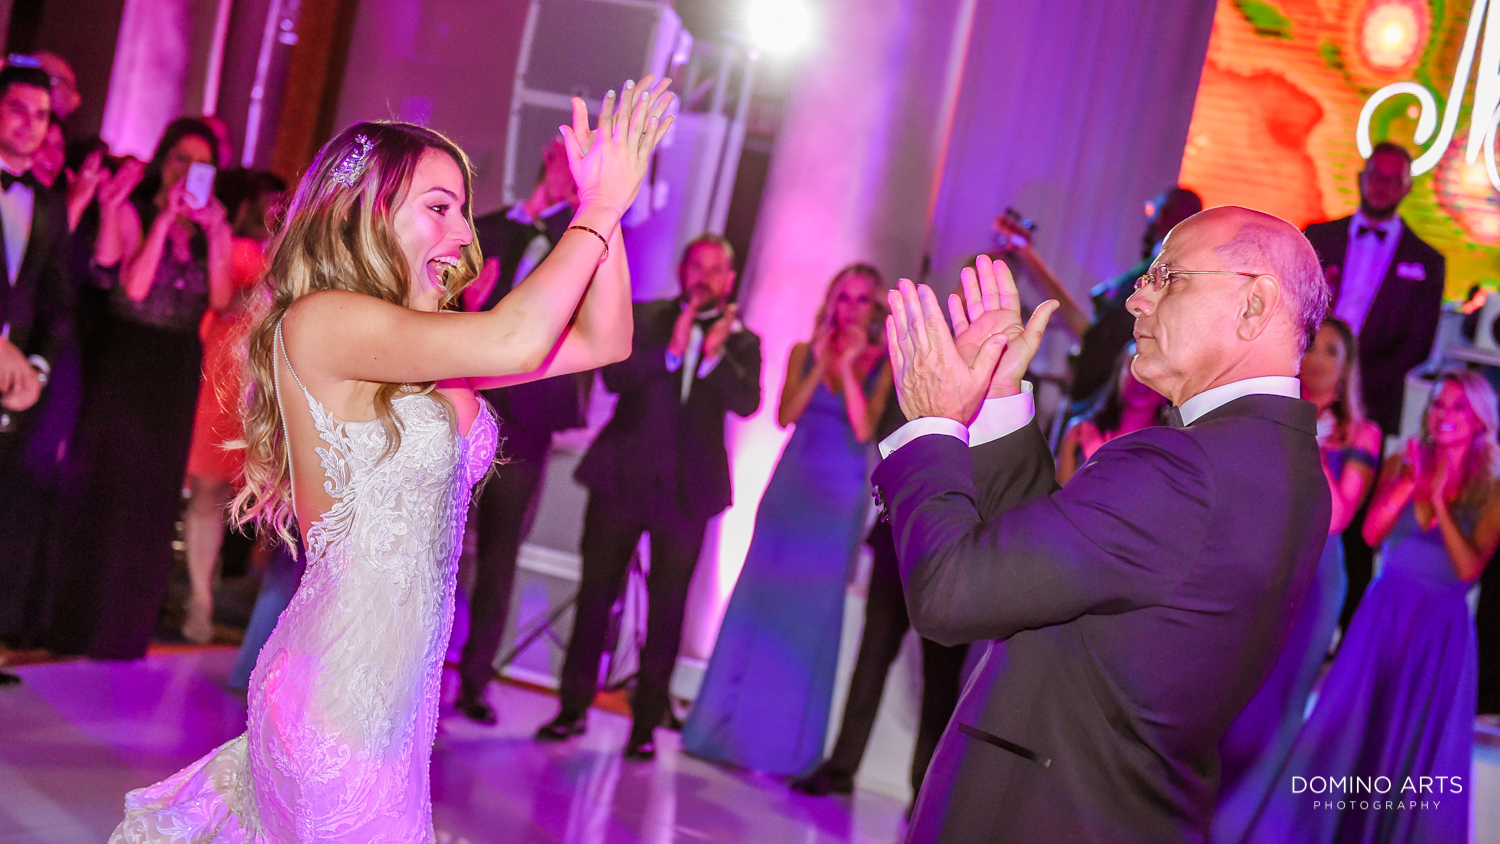 Father and daughter wedding dance at Boca Raton Resort